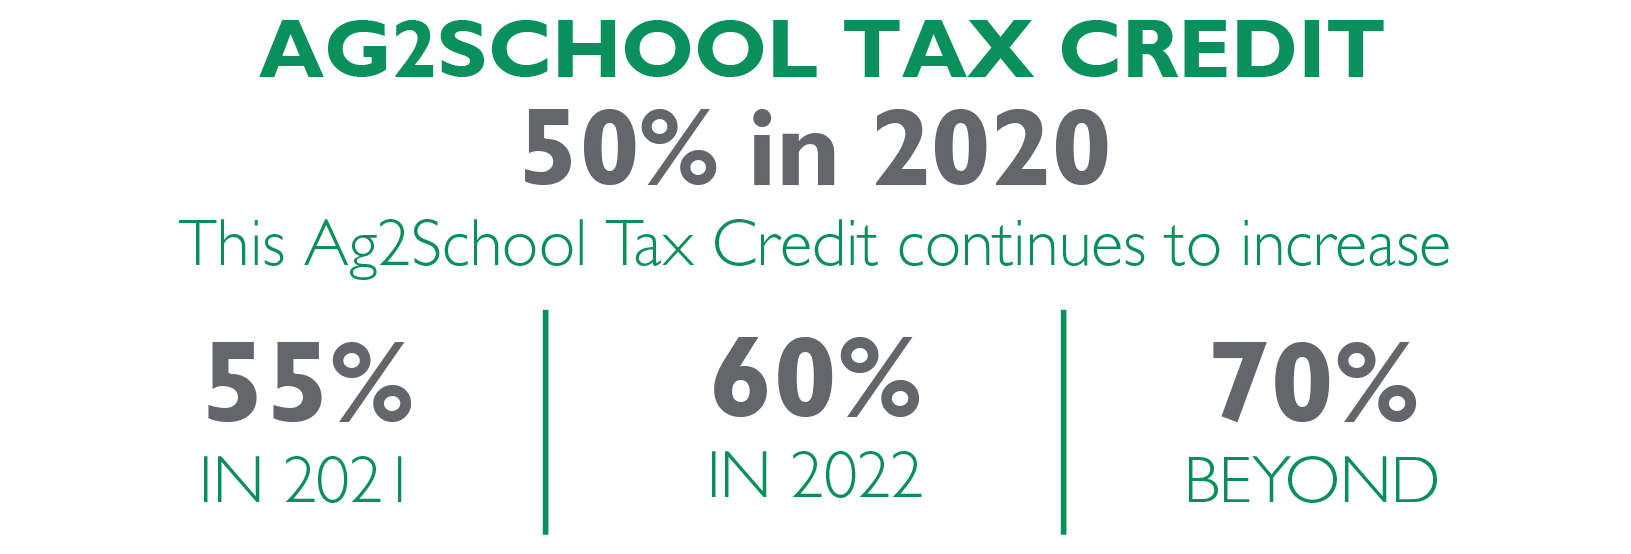 Ag2School Tax Credit Breakdown Chart